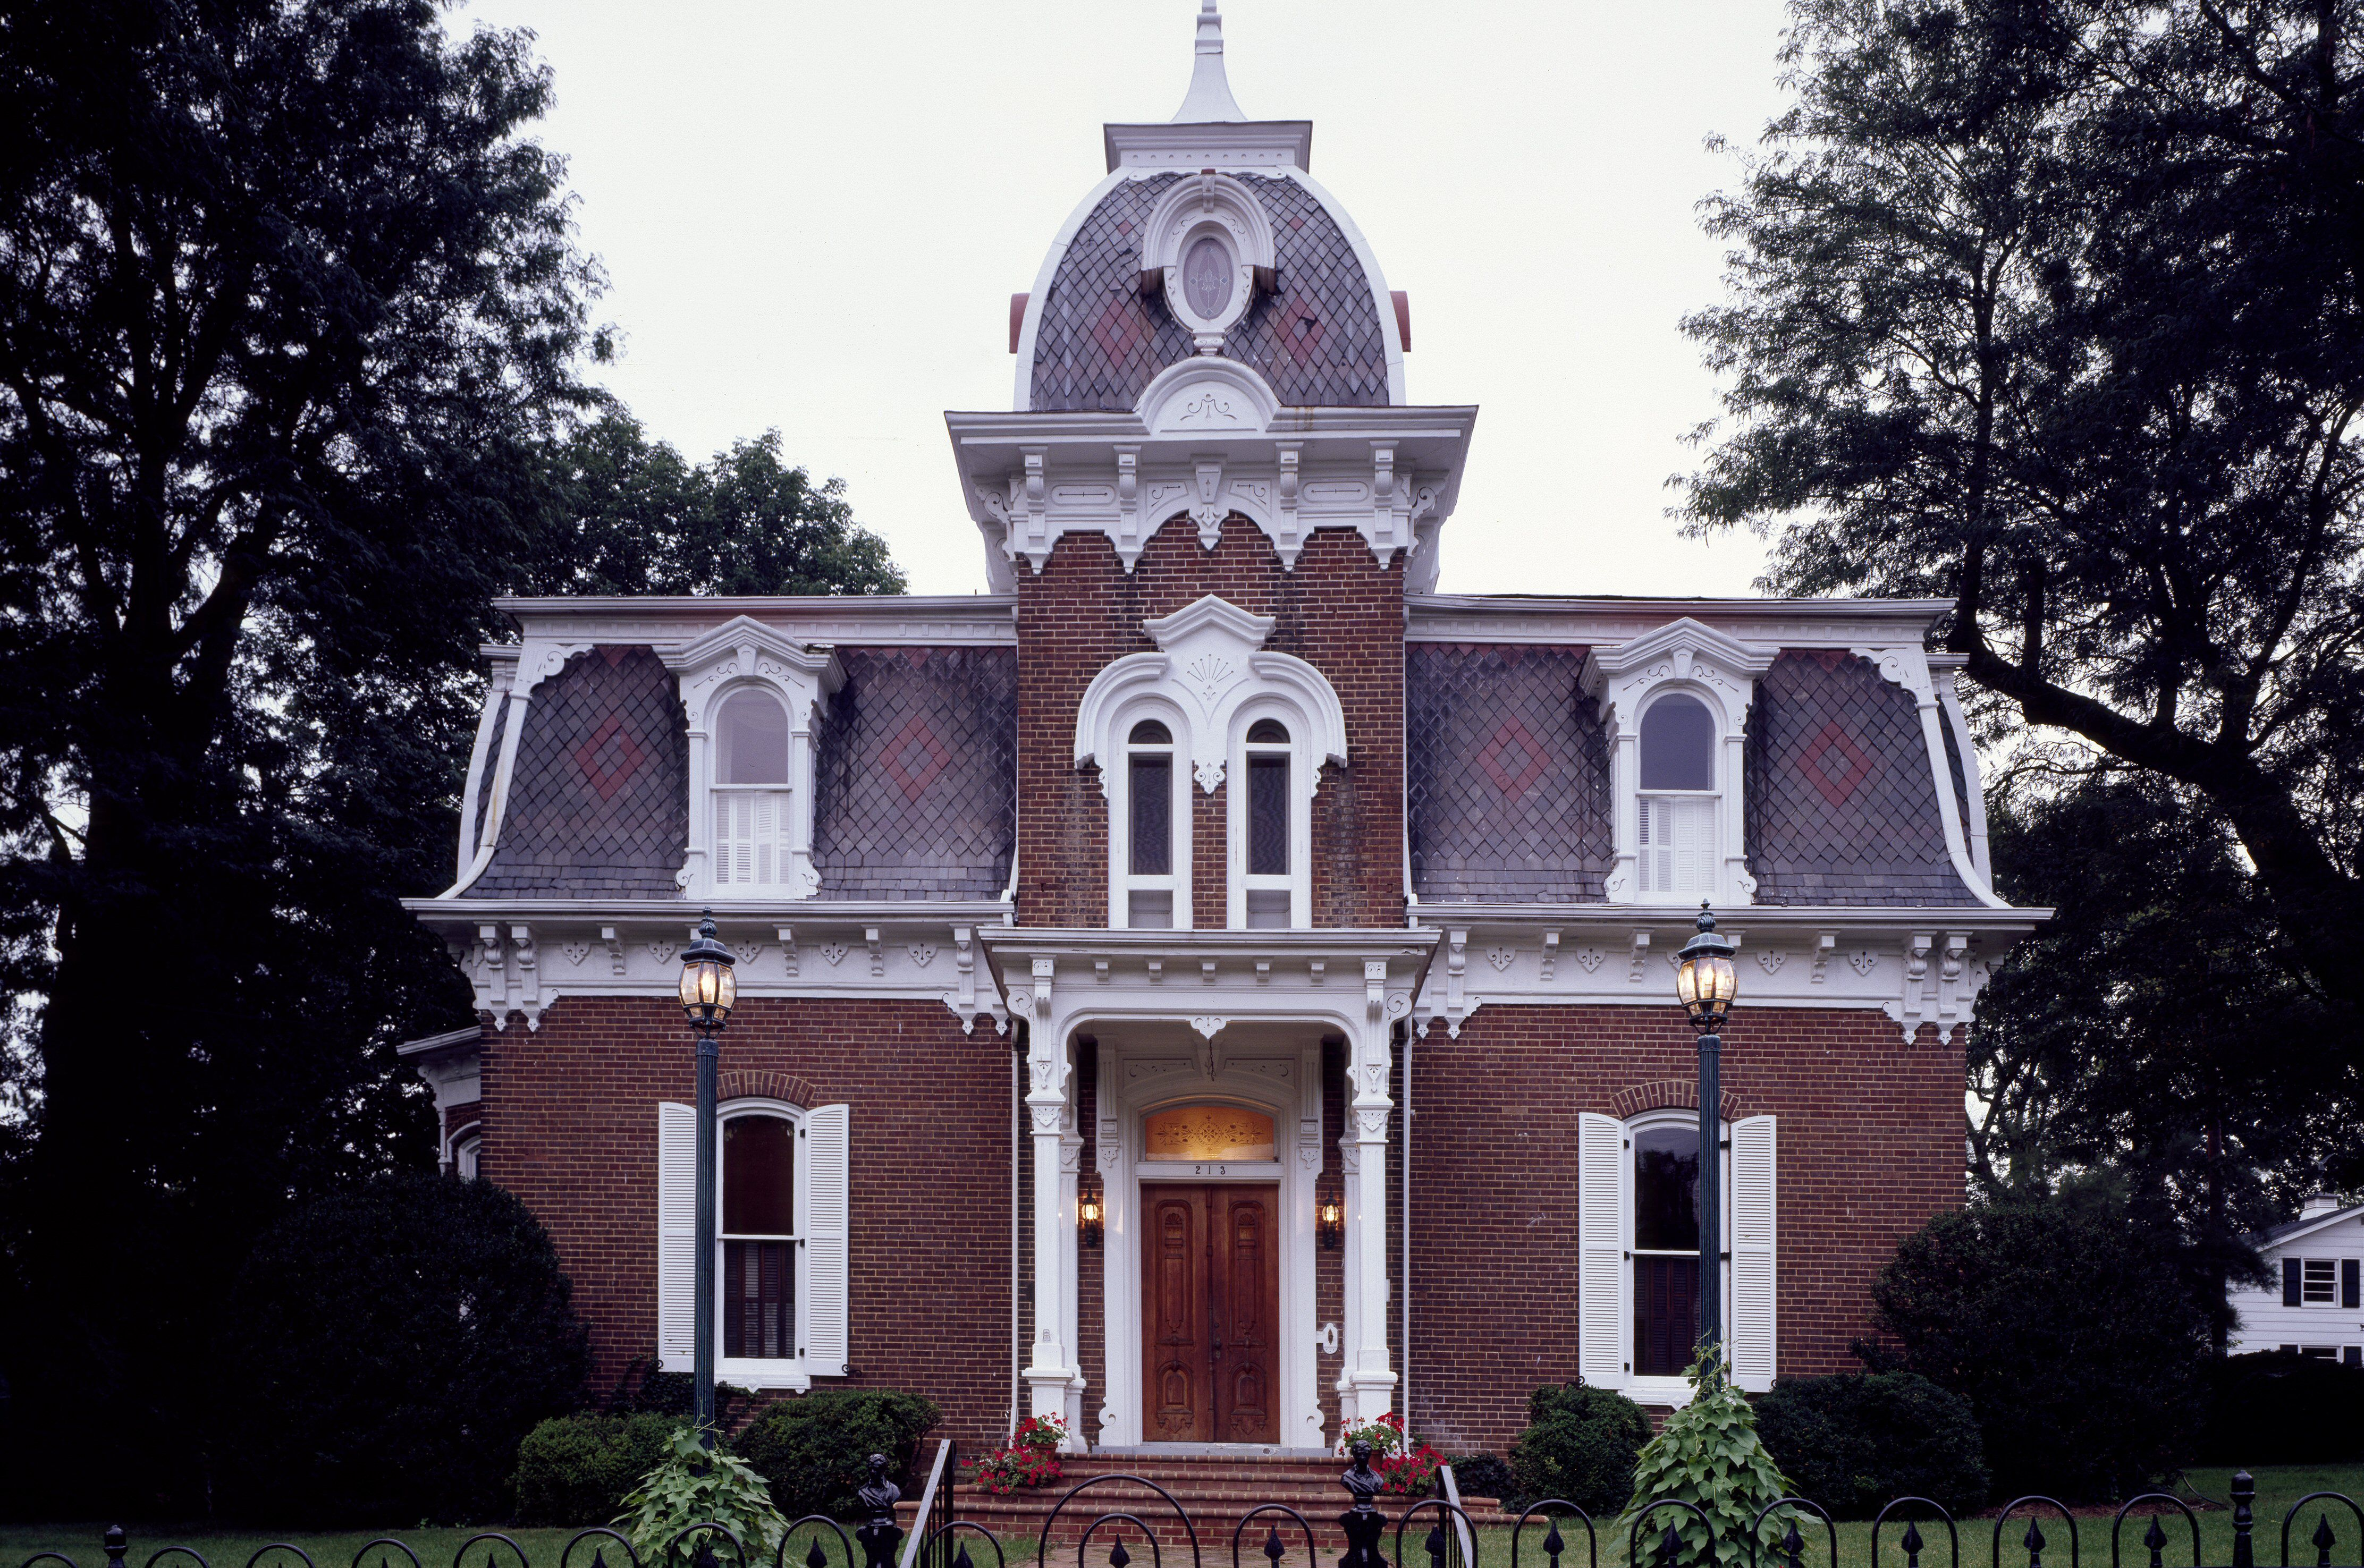 The Second-Empire-style ornate home, mansard roof, dormers, symmetrical, center square tower